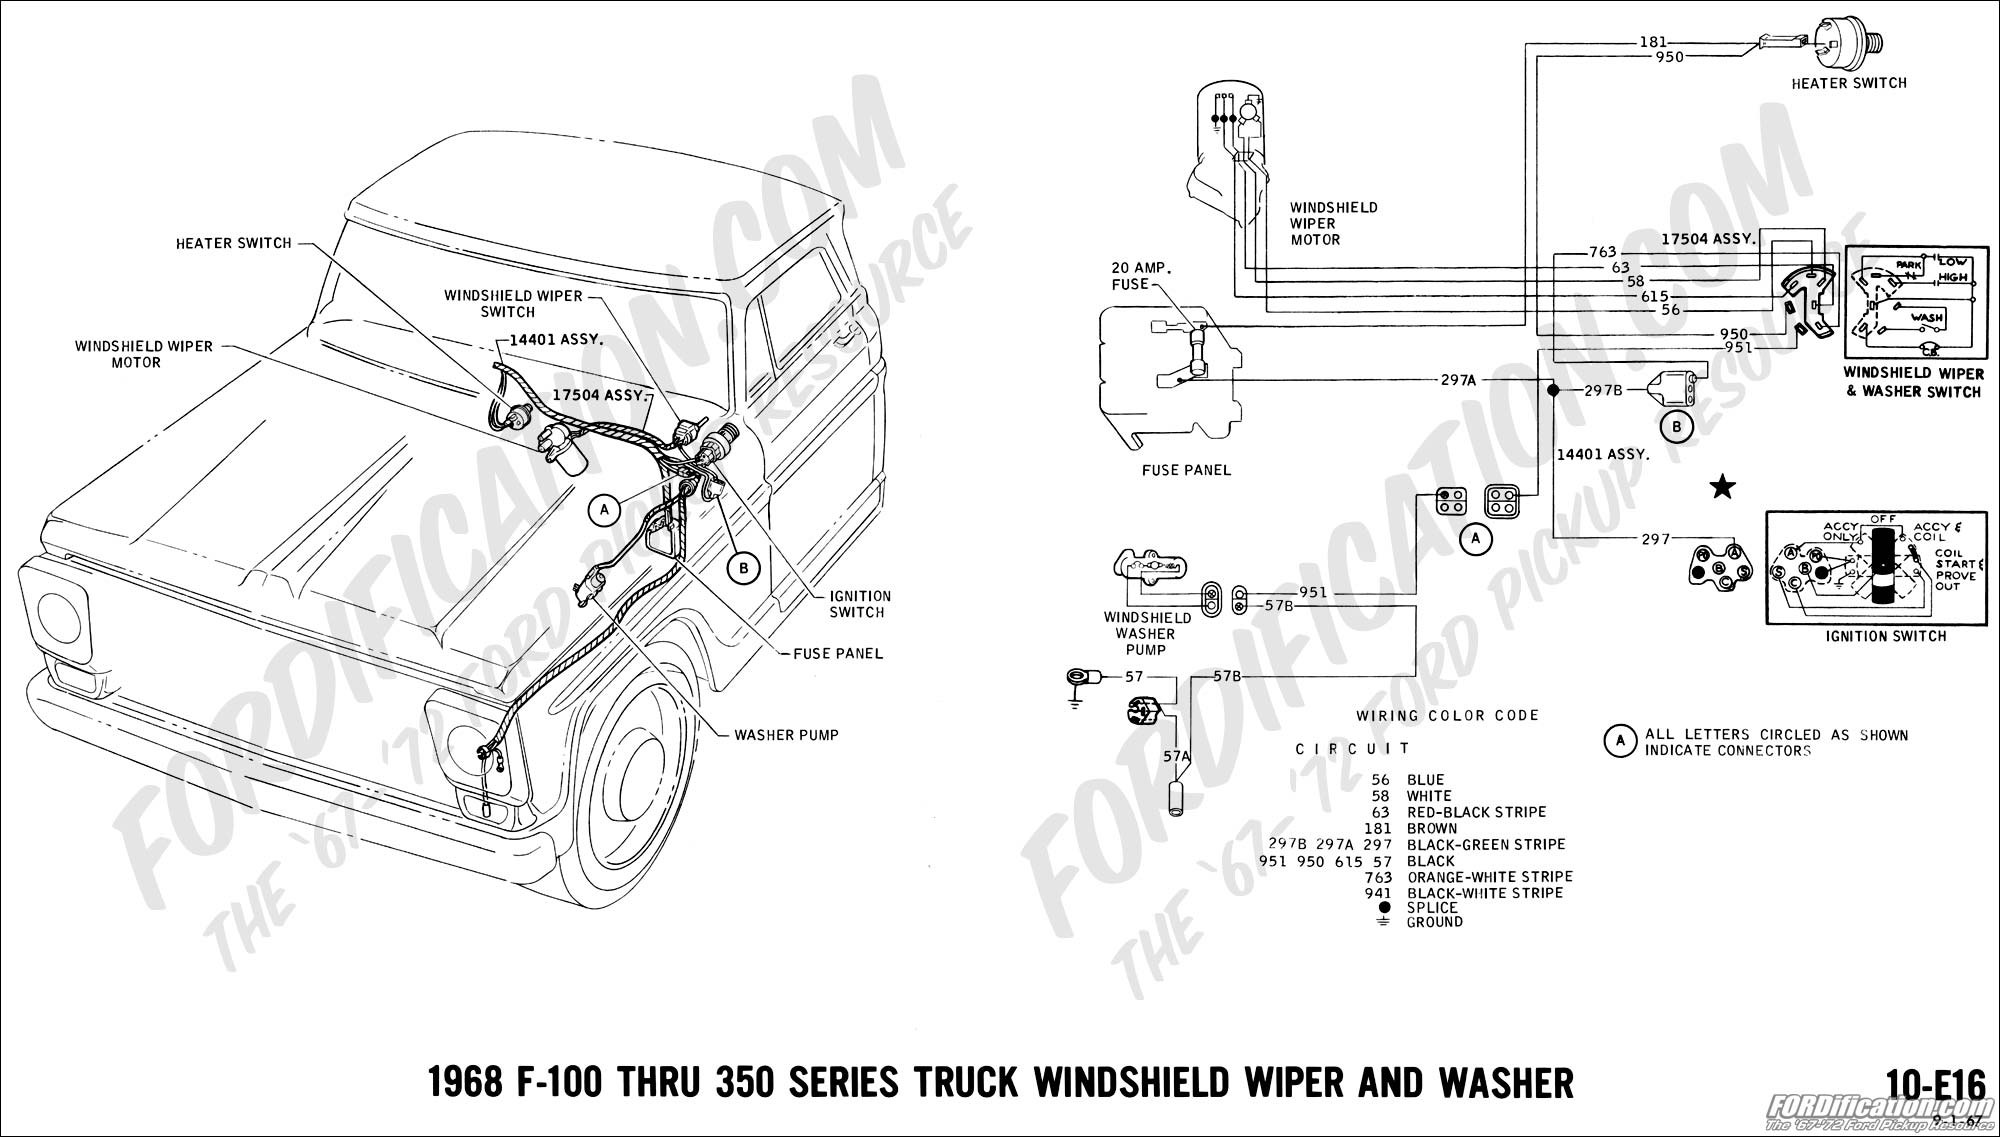 1968 Ford F100 Wiper Switch Wiring Diagram on 1960 ford f100 wiring harness